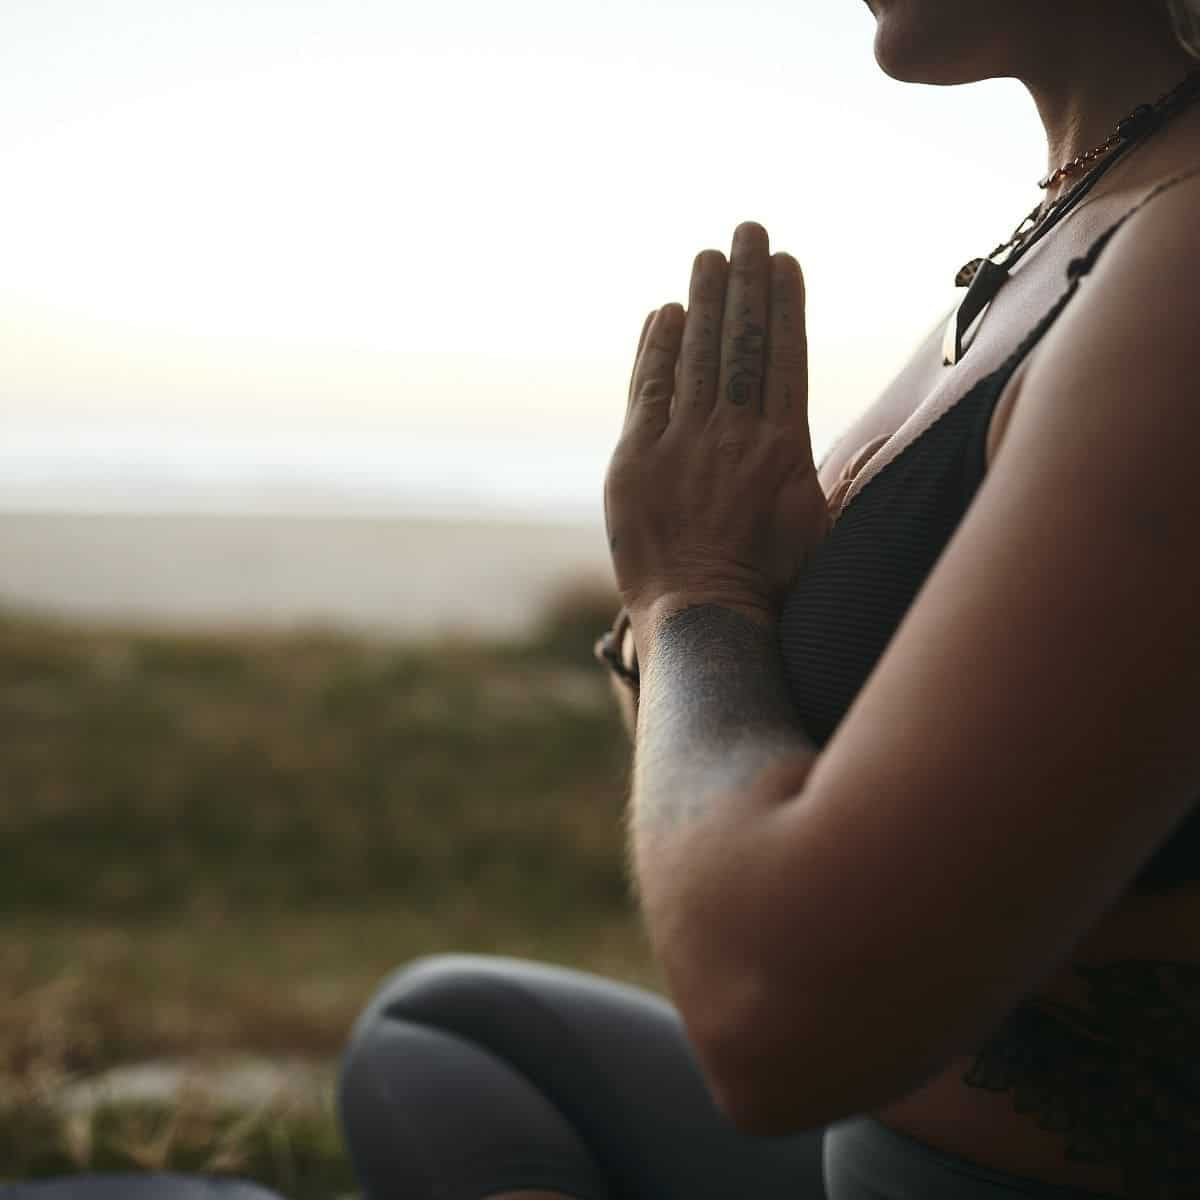 In Yoga, What Does Namaste Mean?